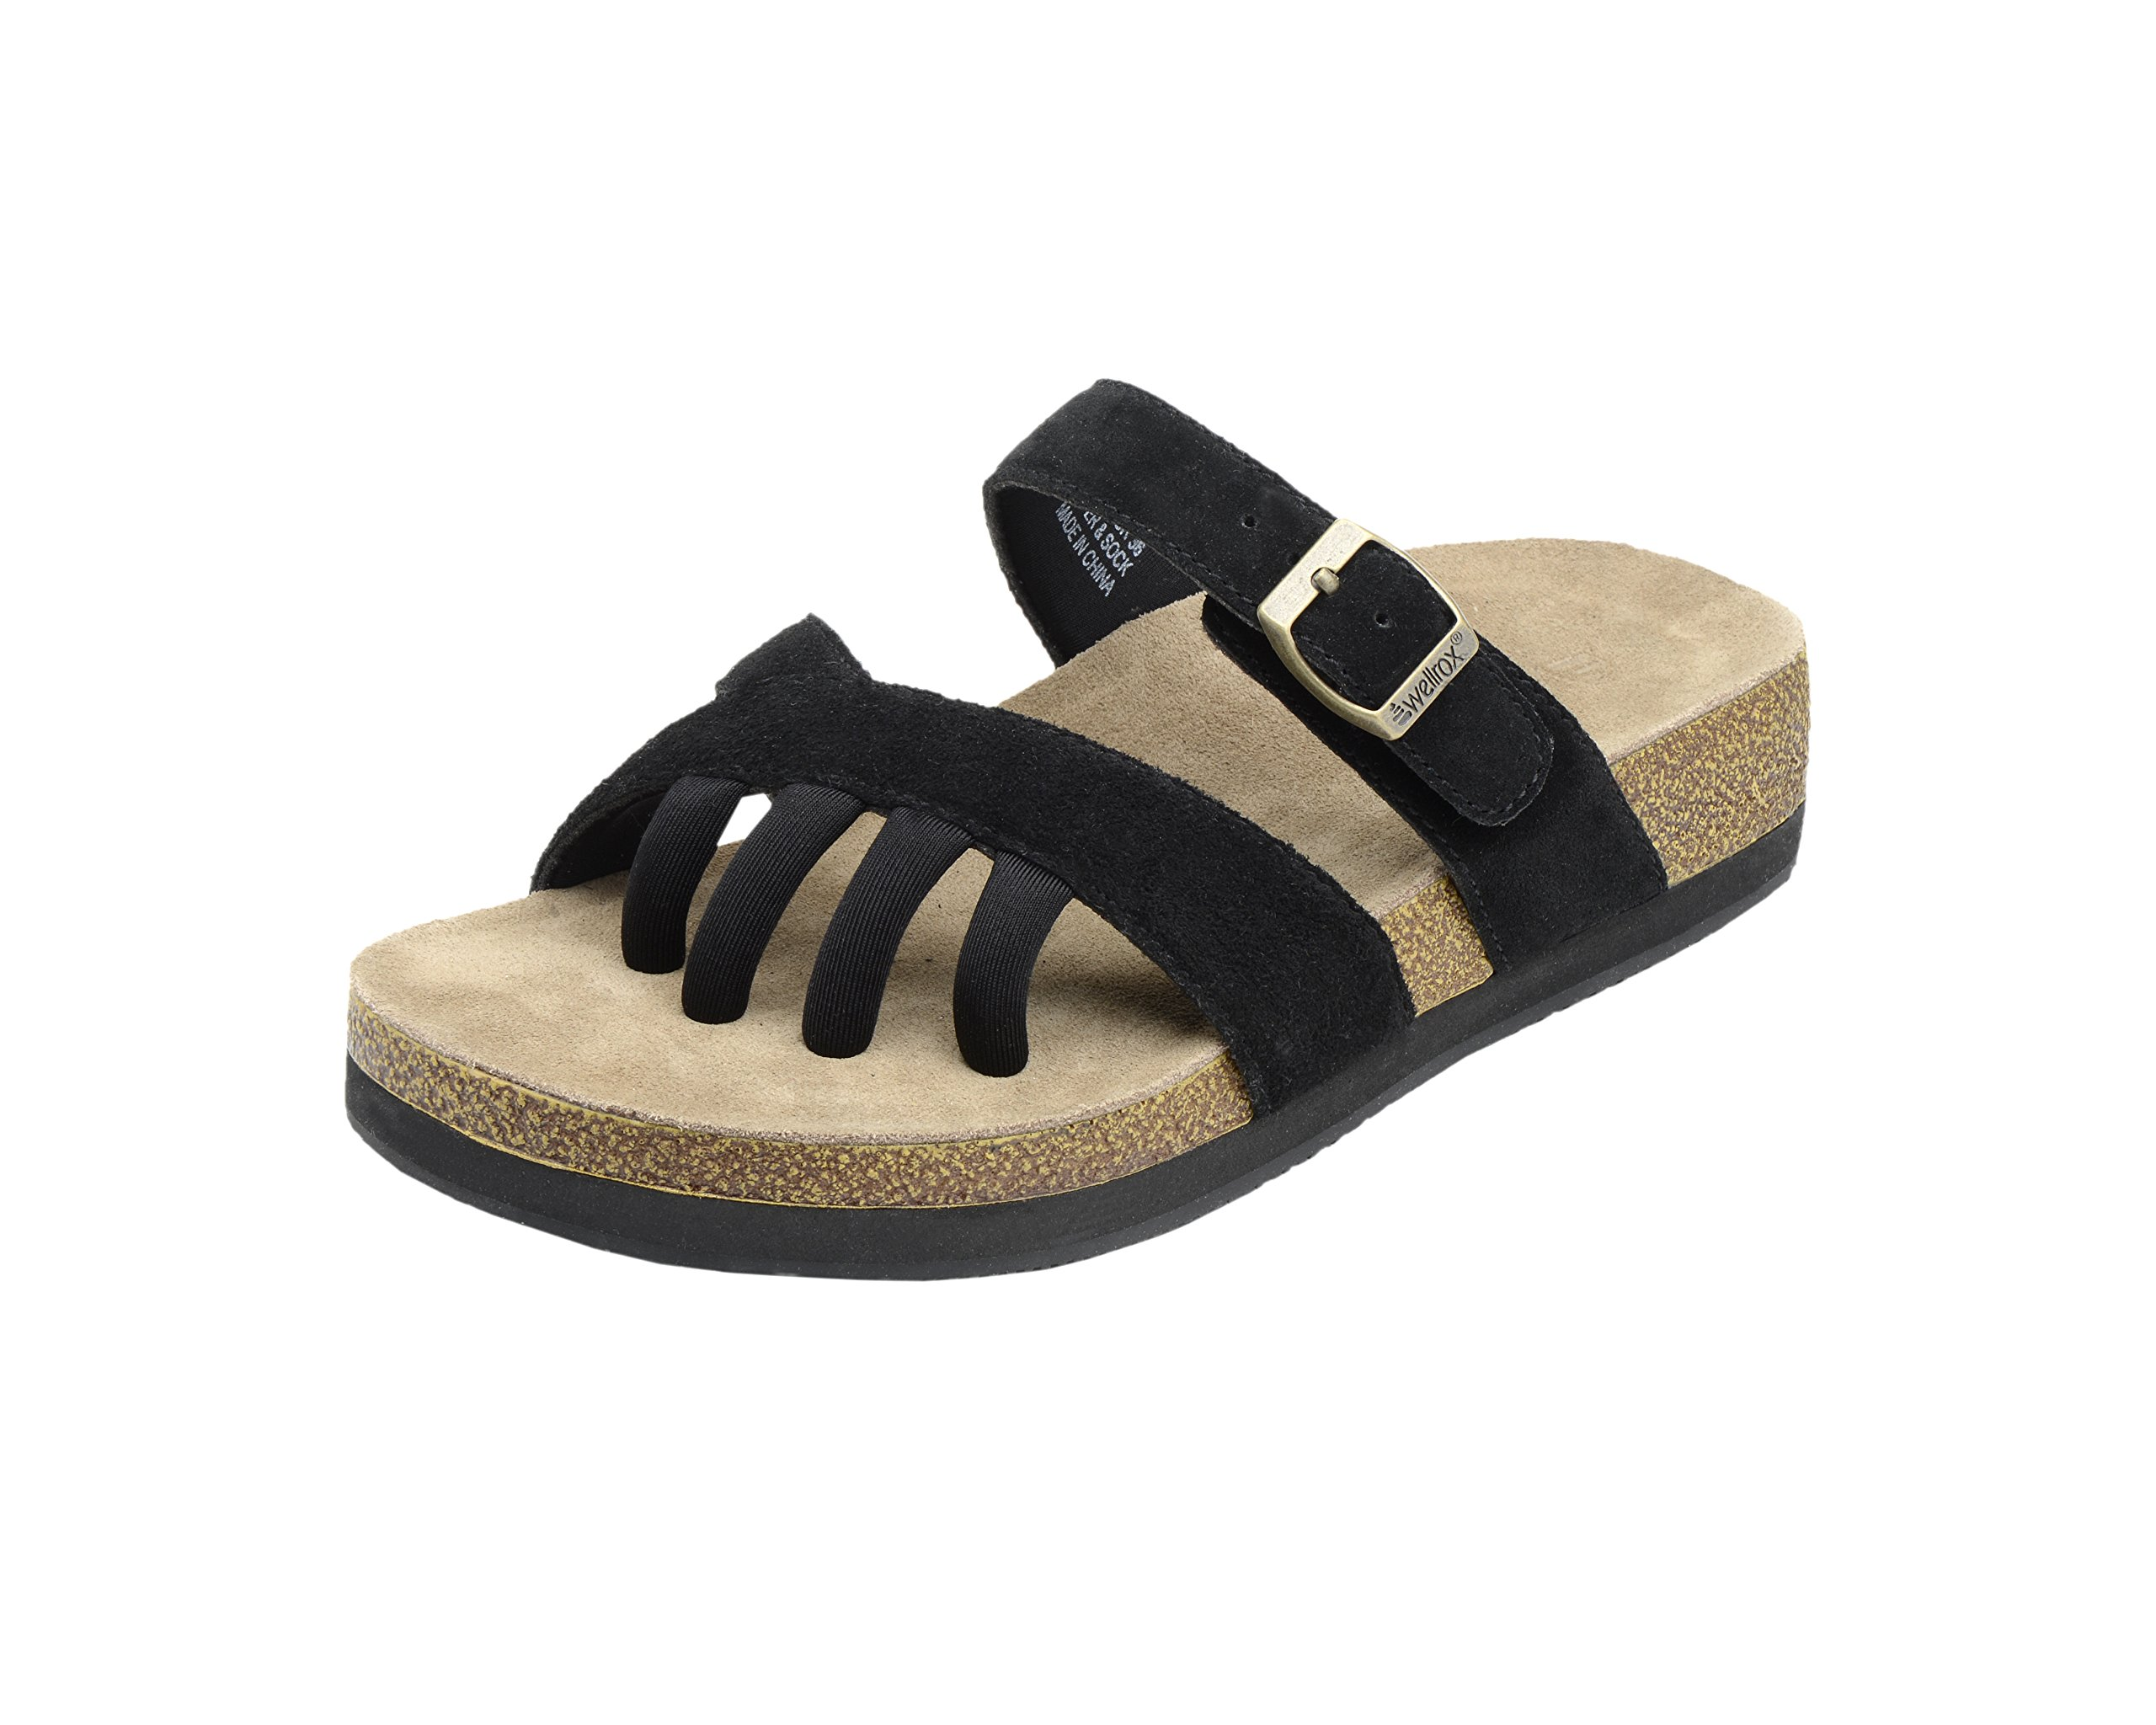 Wellrox Women's Terra-Newport Black Casual Sandal 9